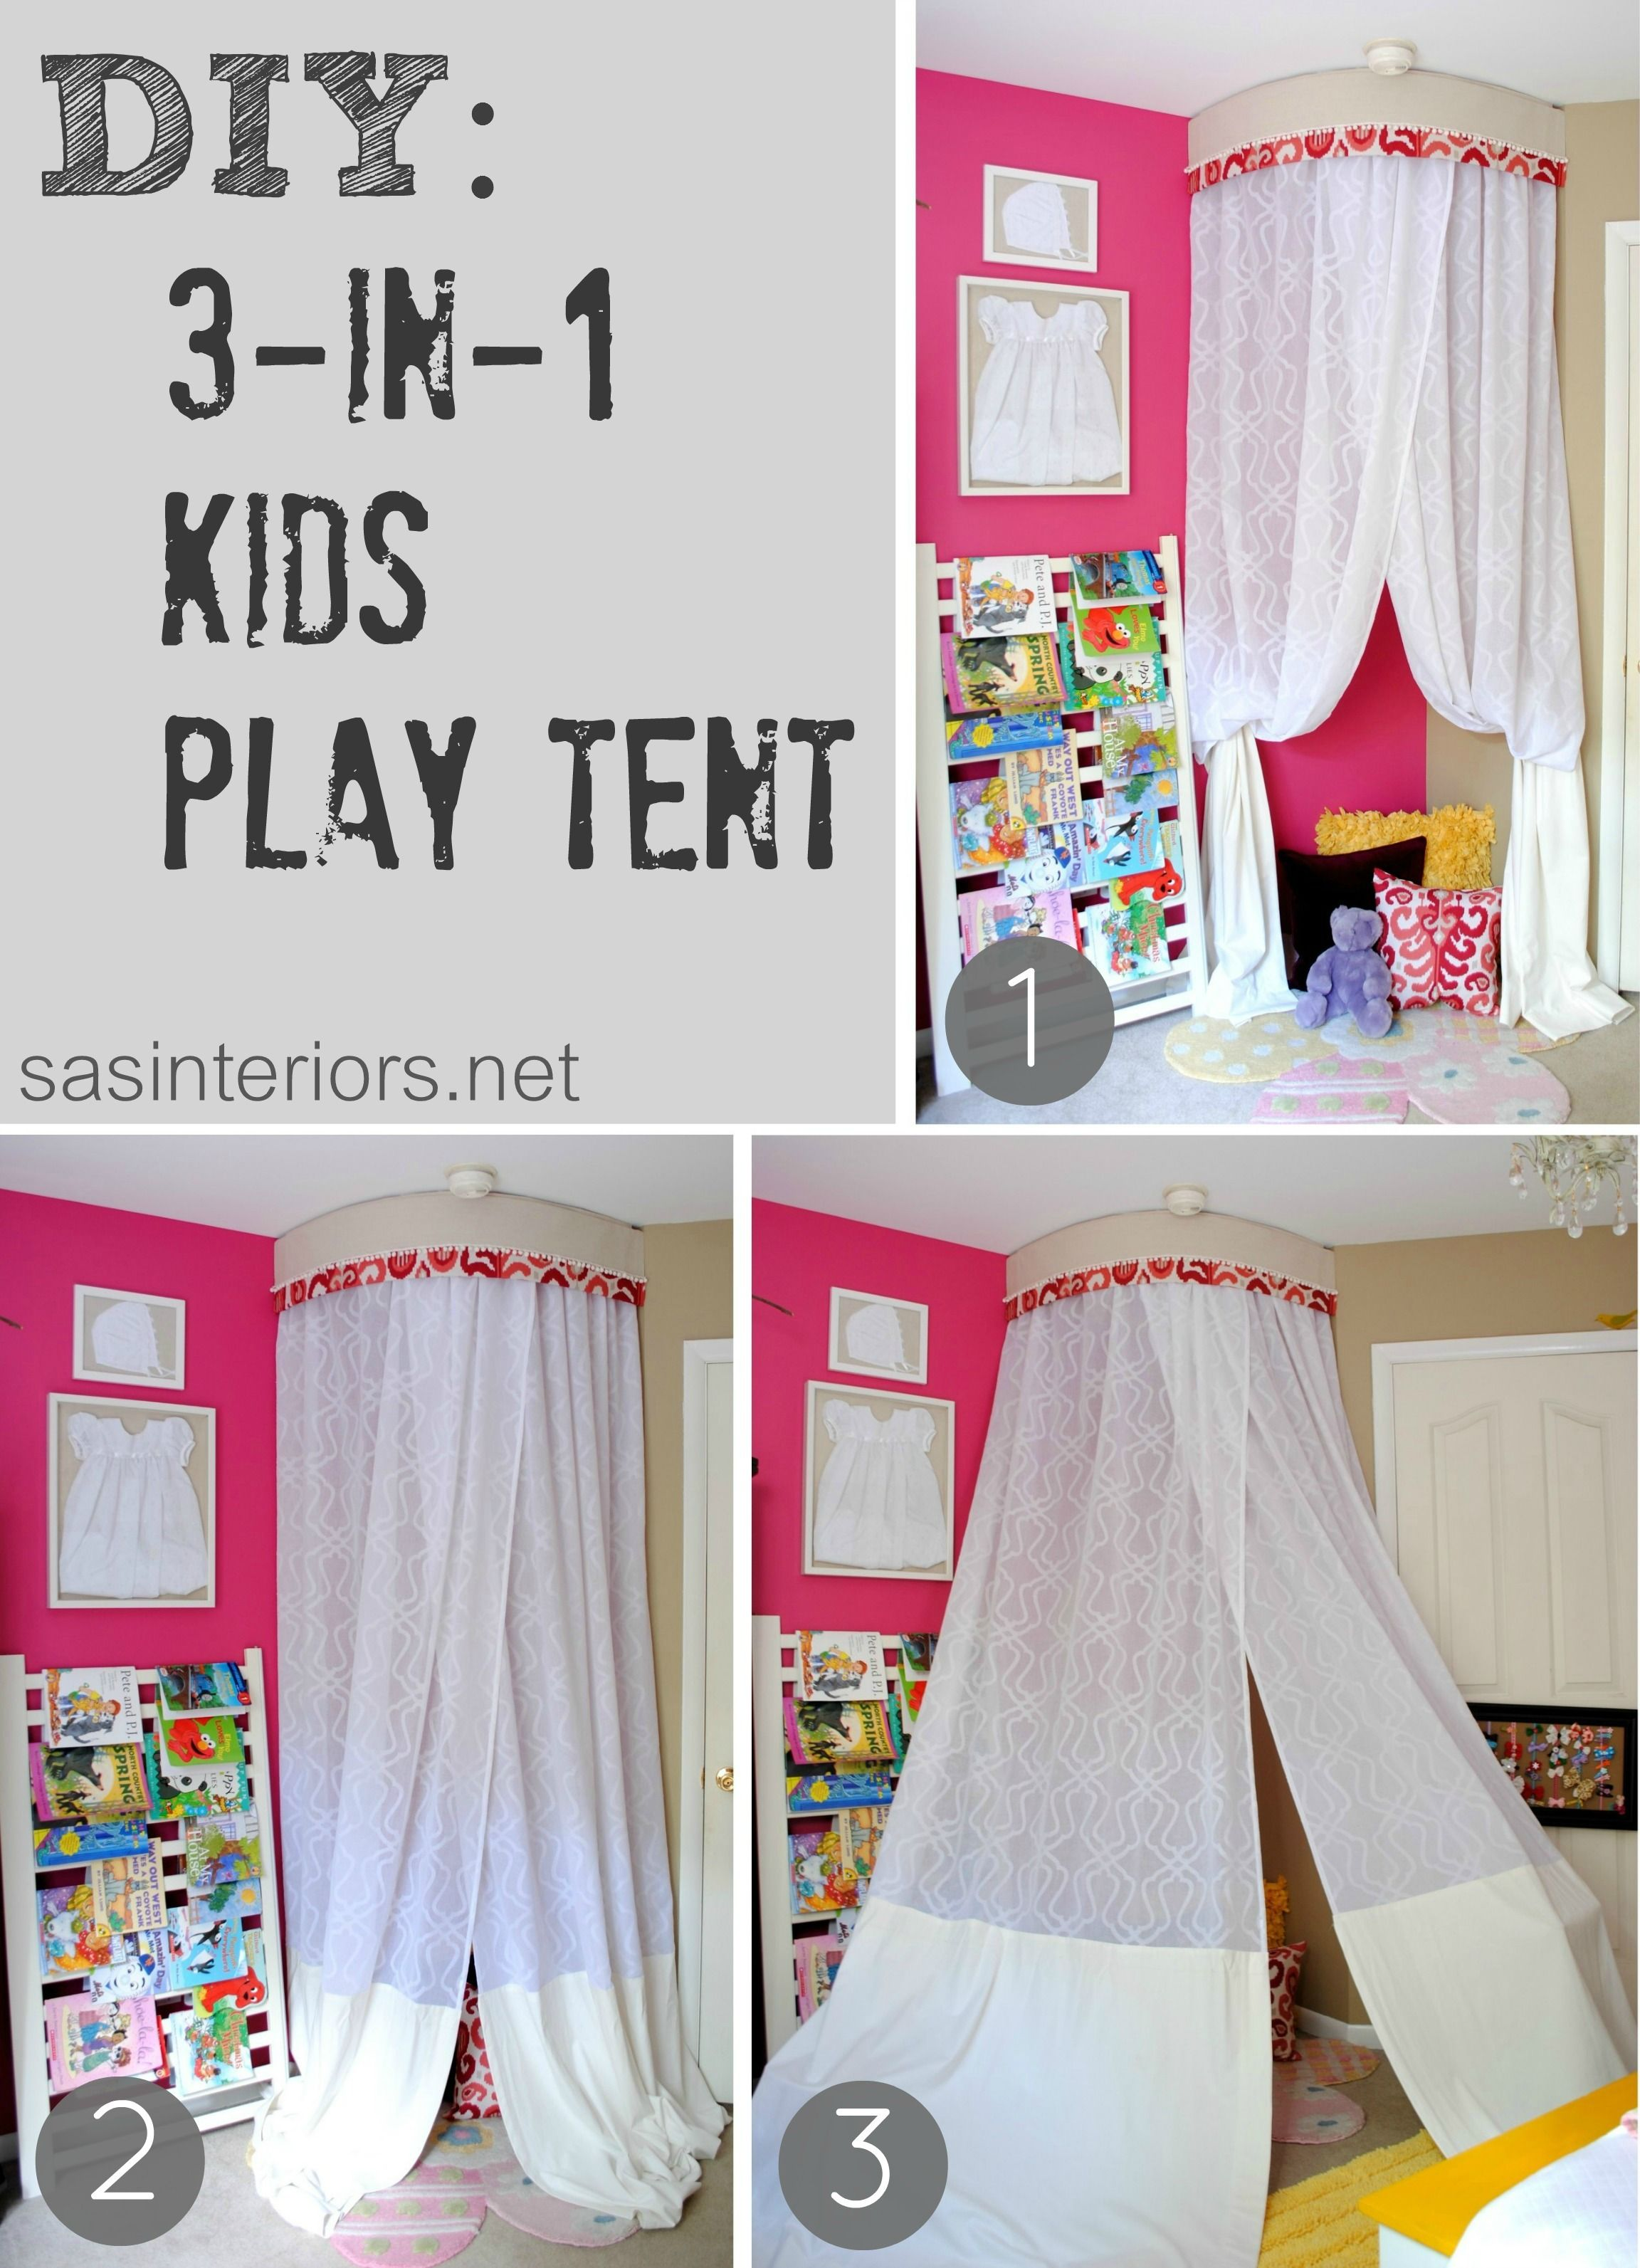 10 creative reading nooks for kids. Play TentsKids ...  sc 1 st  Pinterest & 10 creative reading nooks for kids | Tents Plays and Room